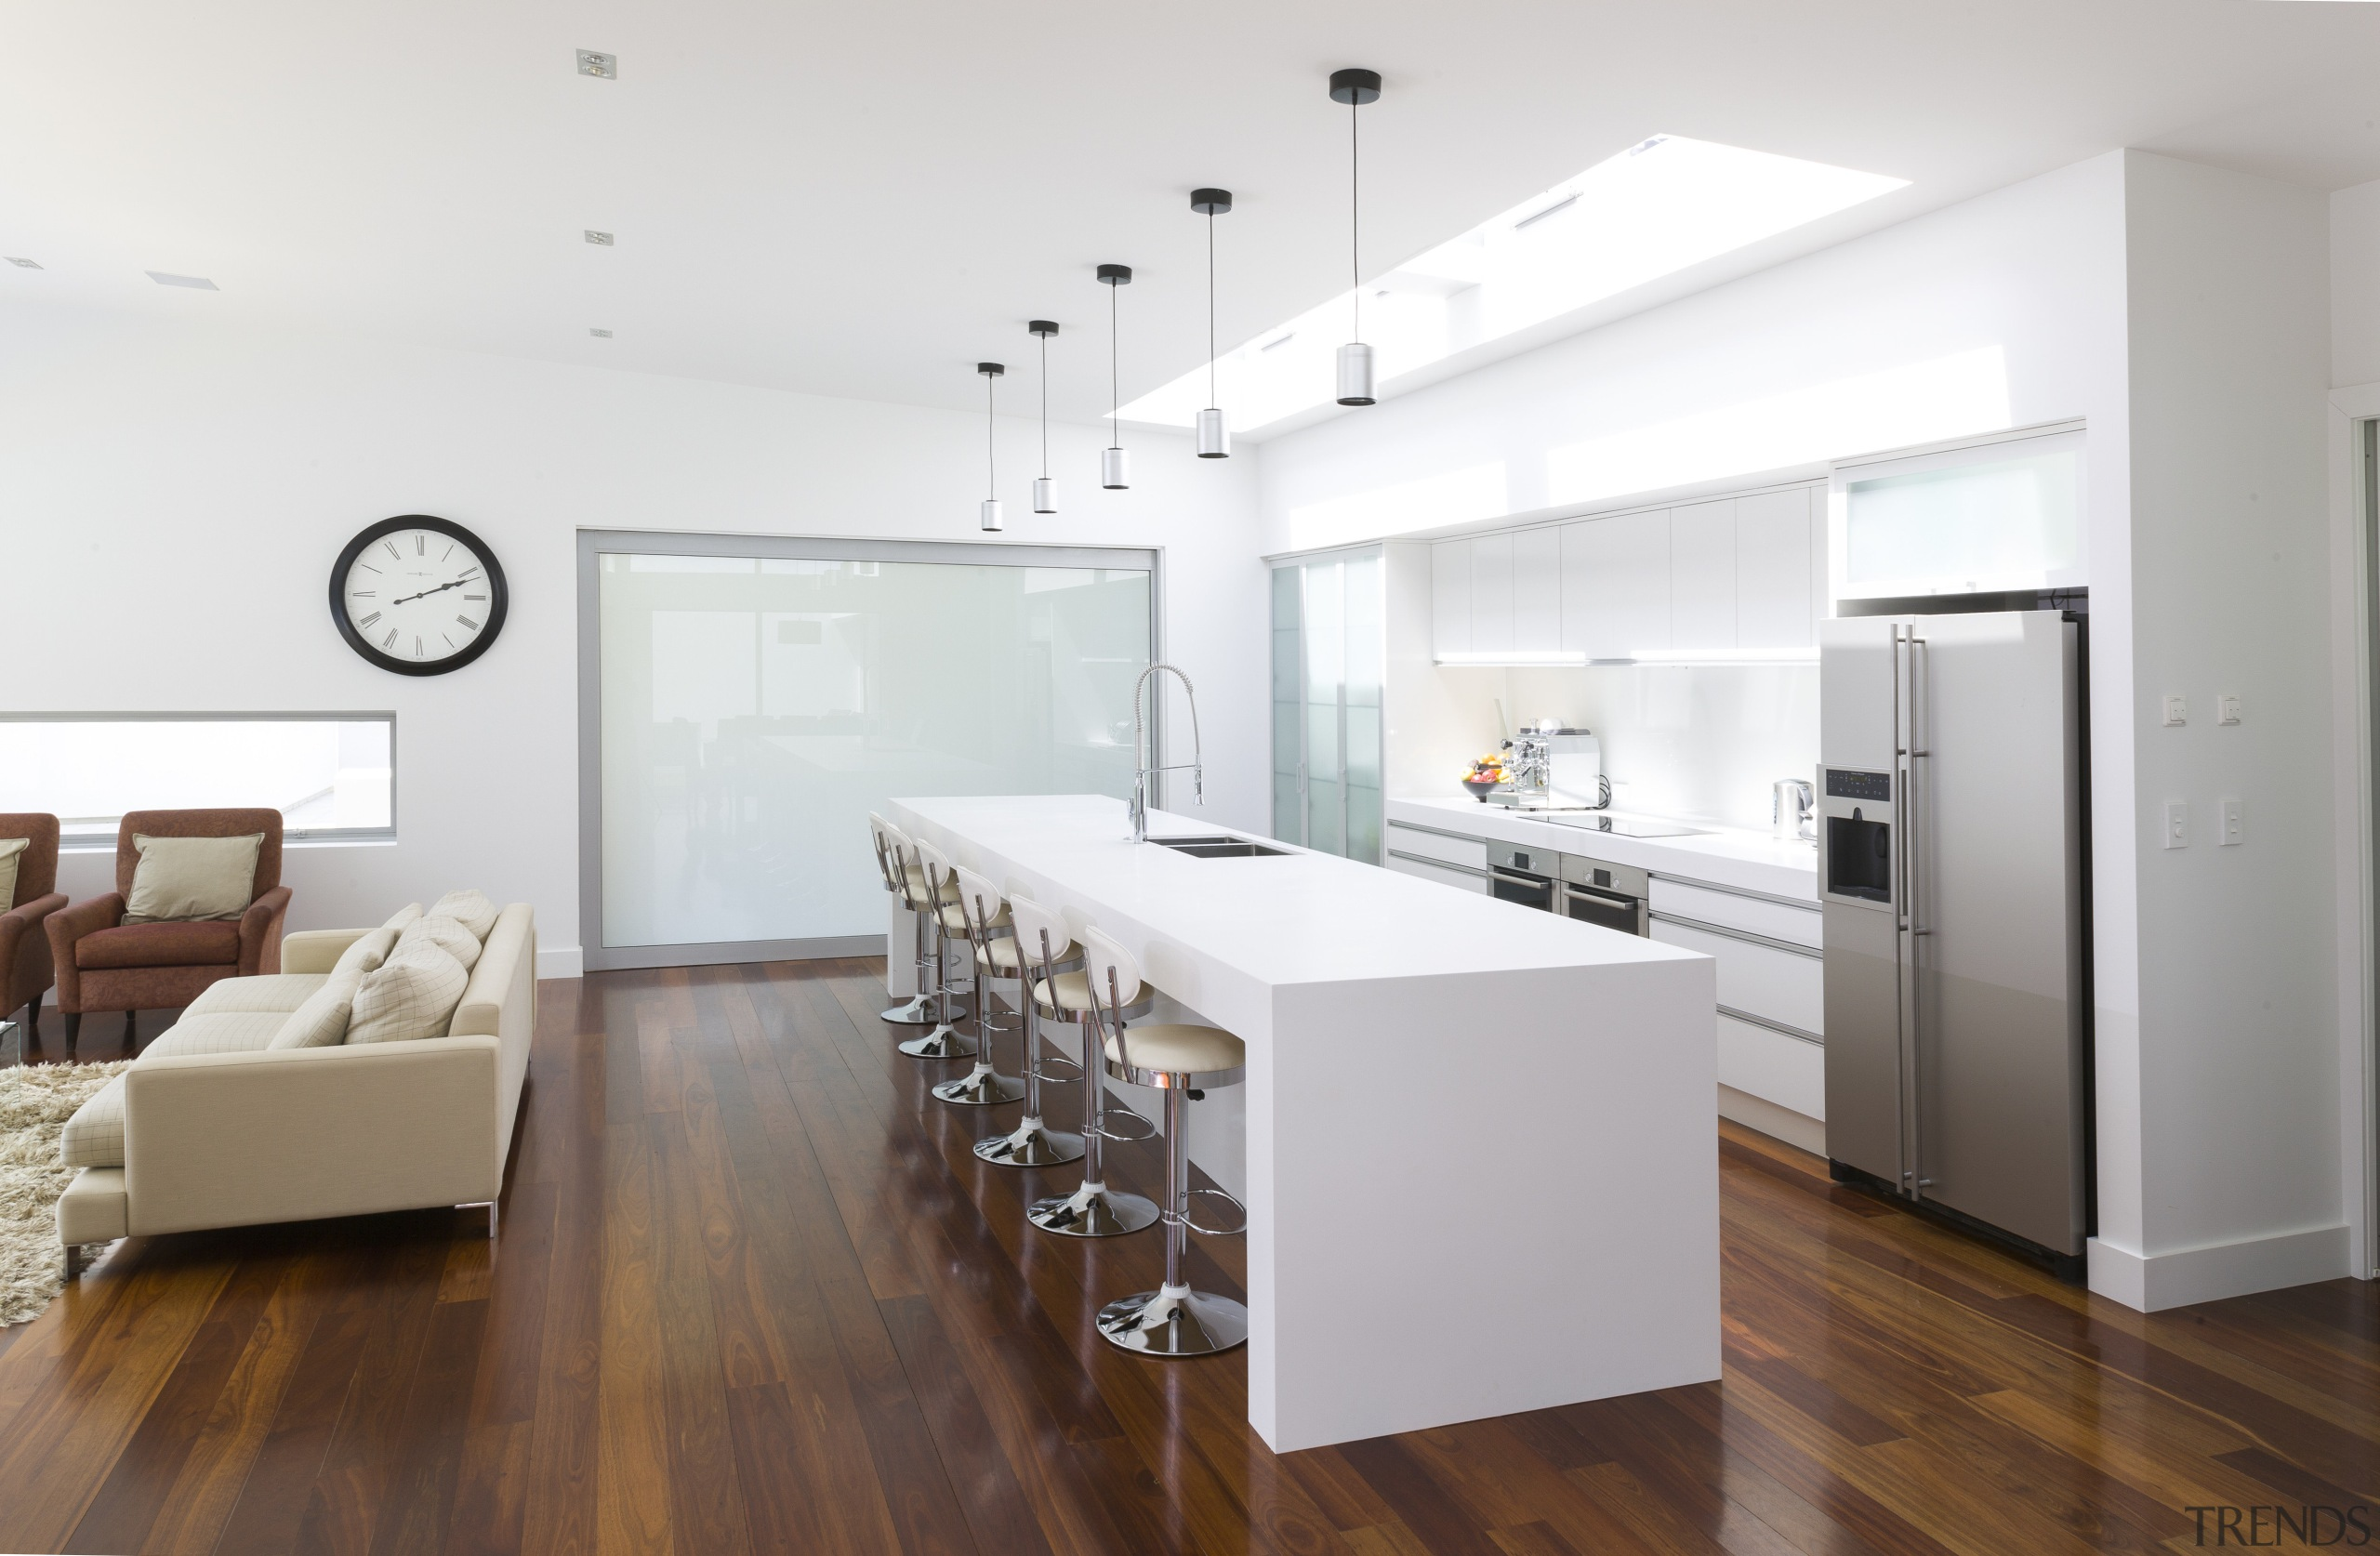 Contemporary white kitchen with large island. Internal sliding floor, flooring, interior design, interior designer, kitchen, living room, real estate, wood flooring, white